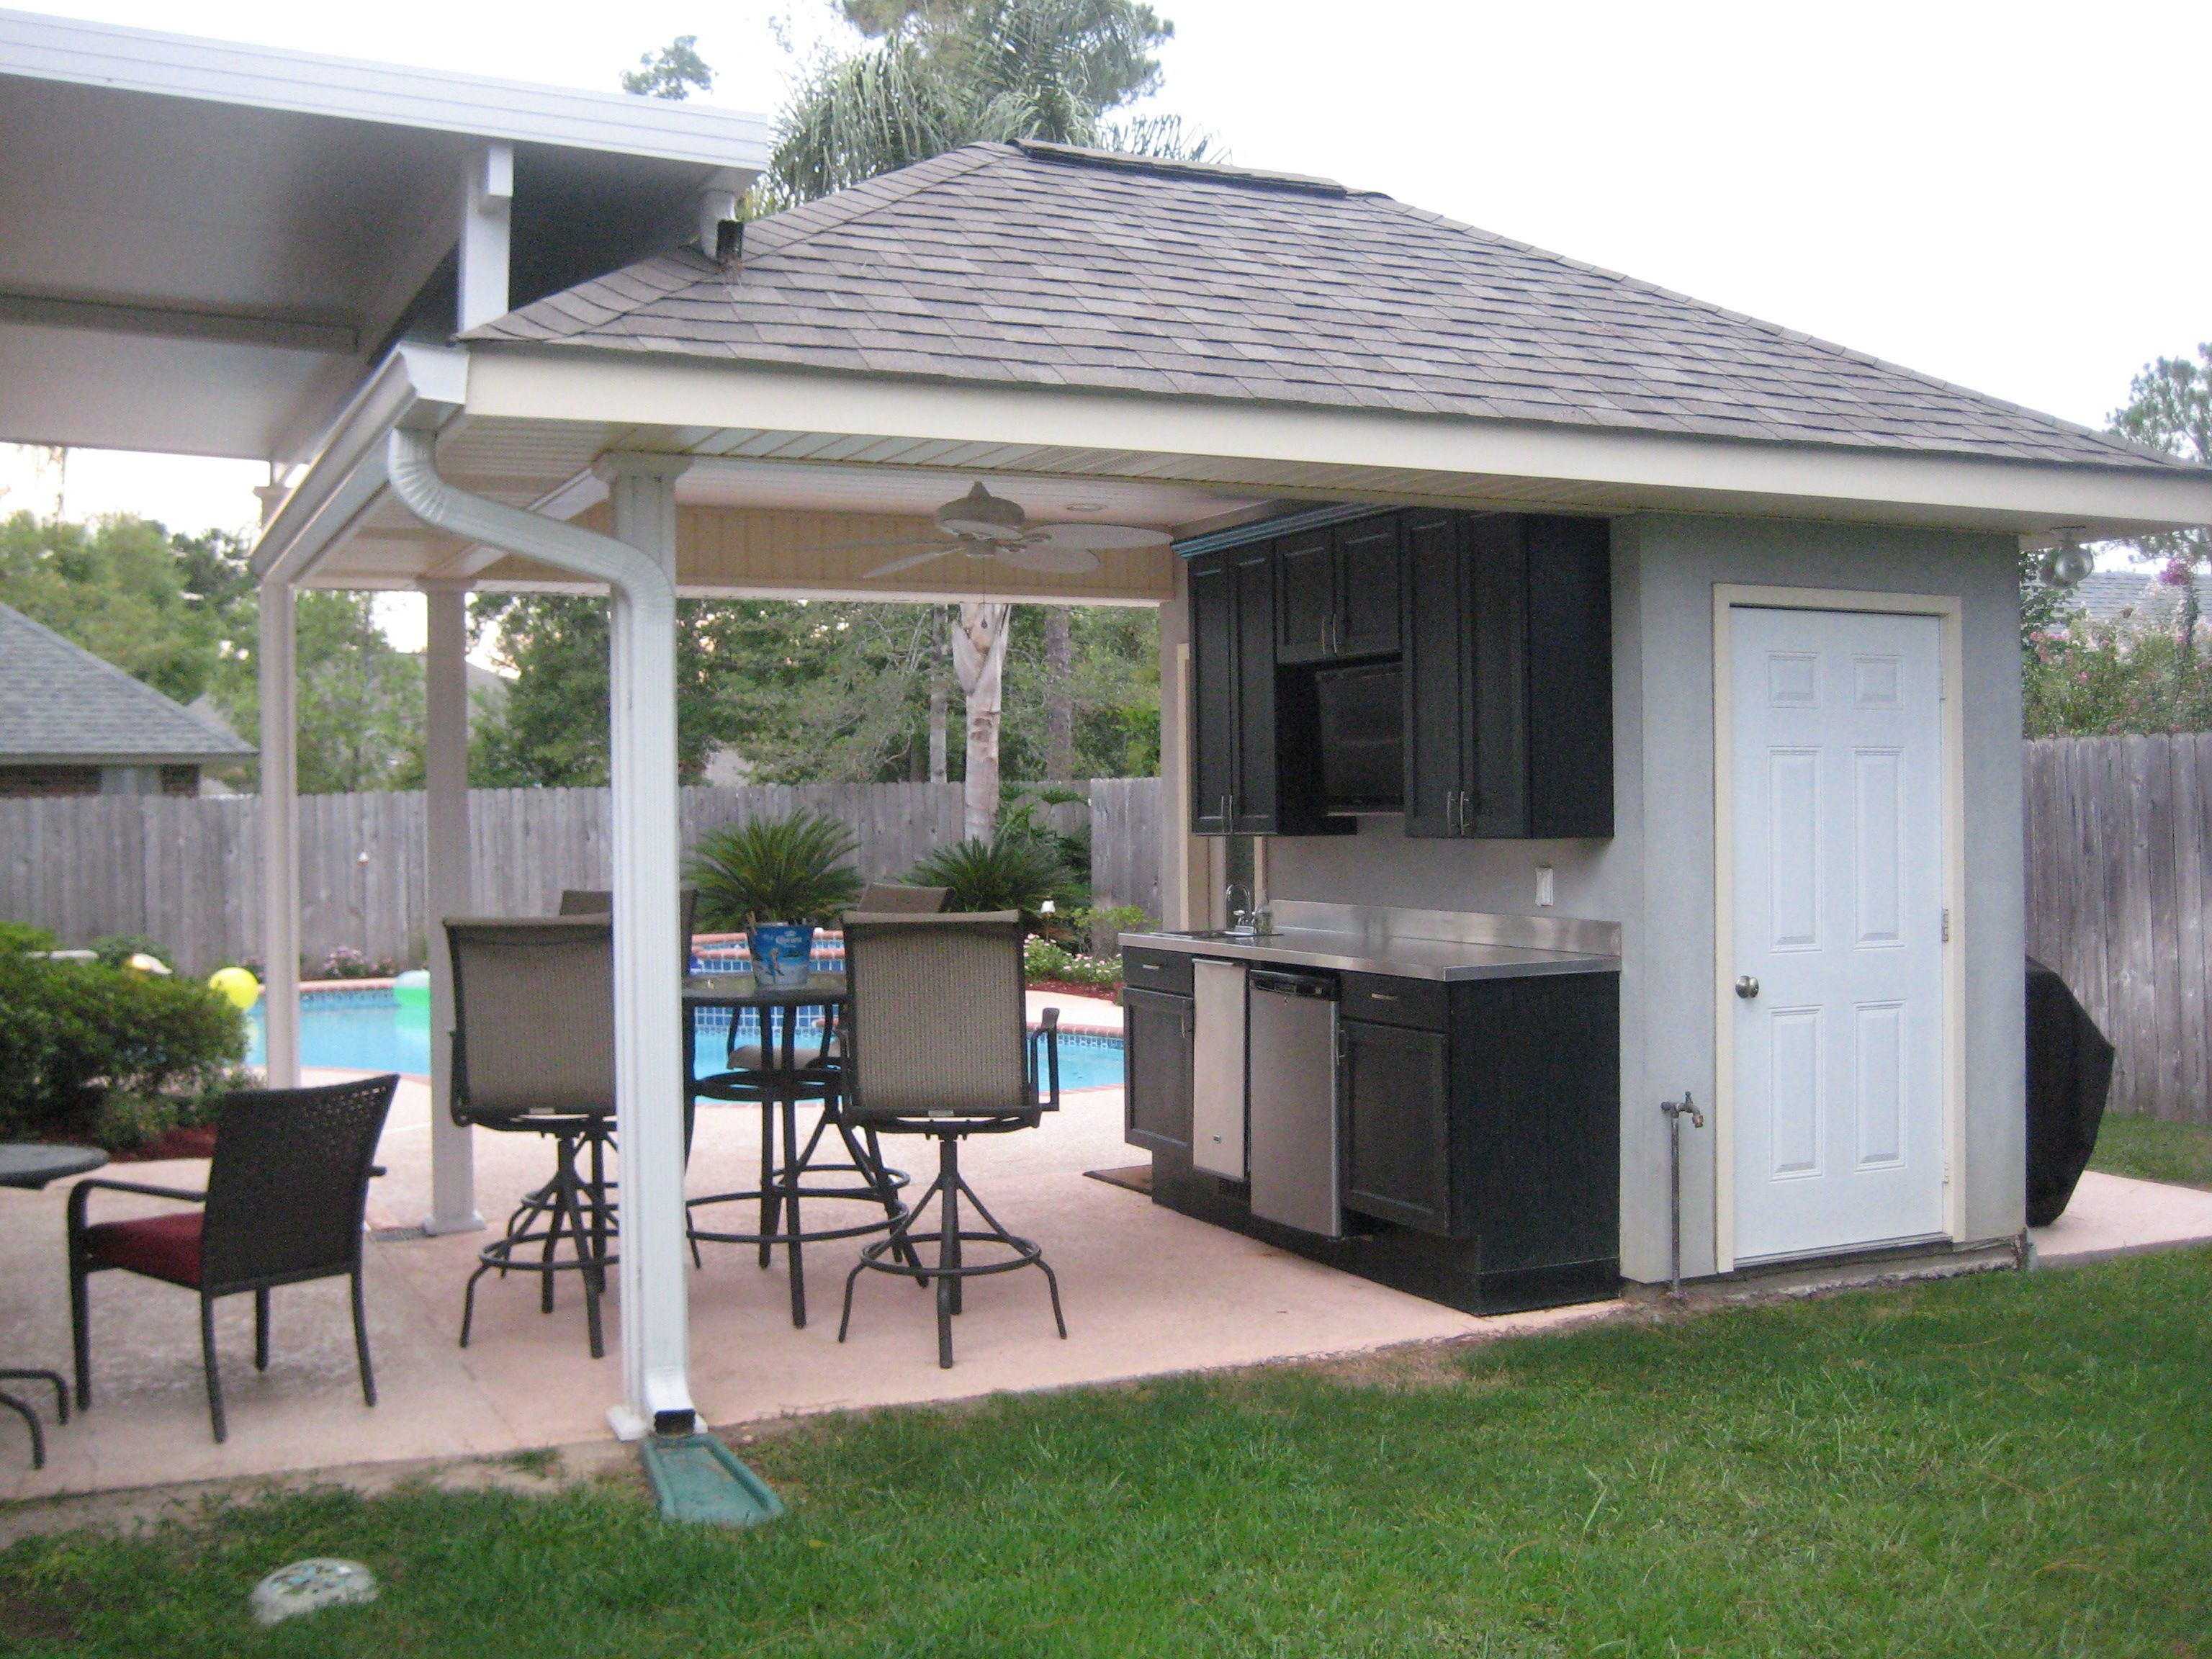 Pool House Plans With Bathroom And Kitchen Bar Areapool Bedroom Houses Shower Jpg 3 072 2 304 Pixels Pool Patio Designs Outdoor Pool Bathroom Pool House Plans